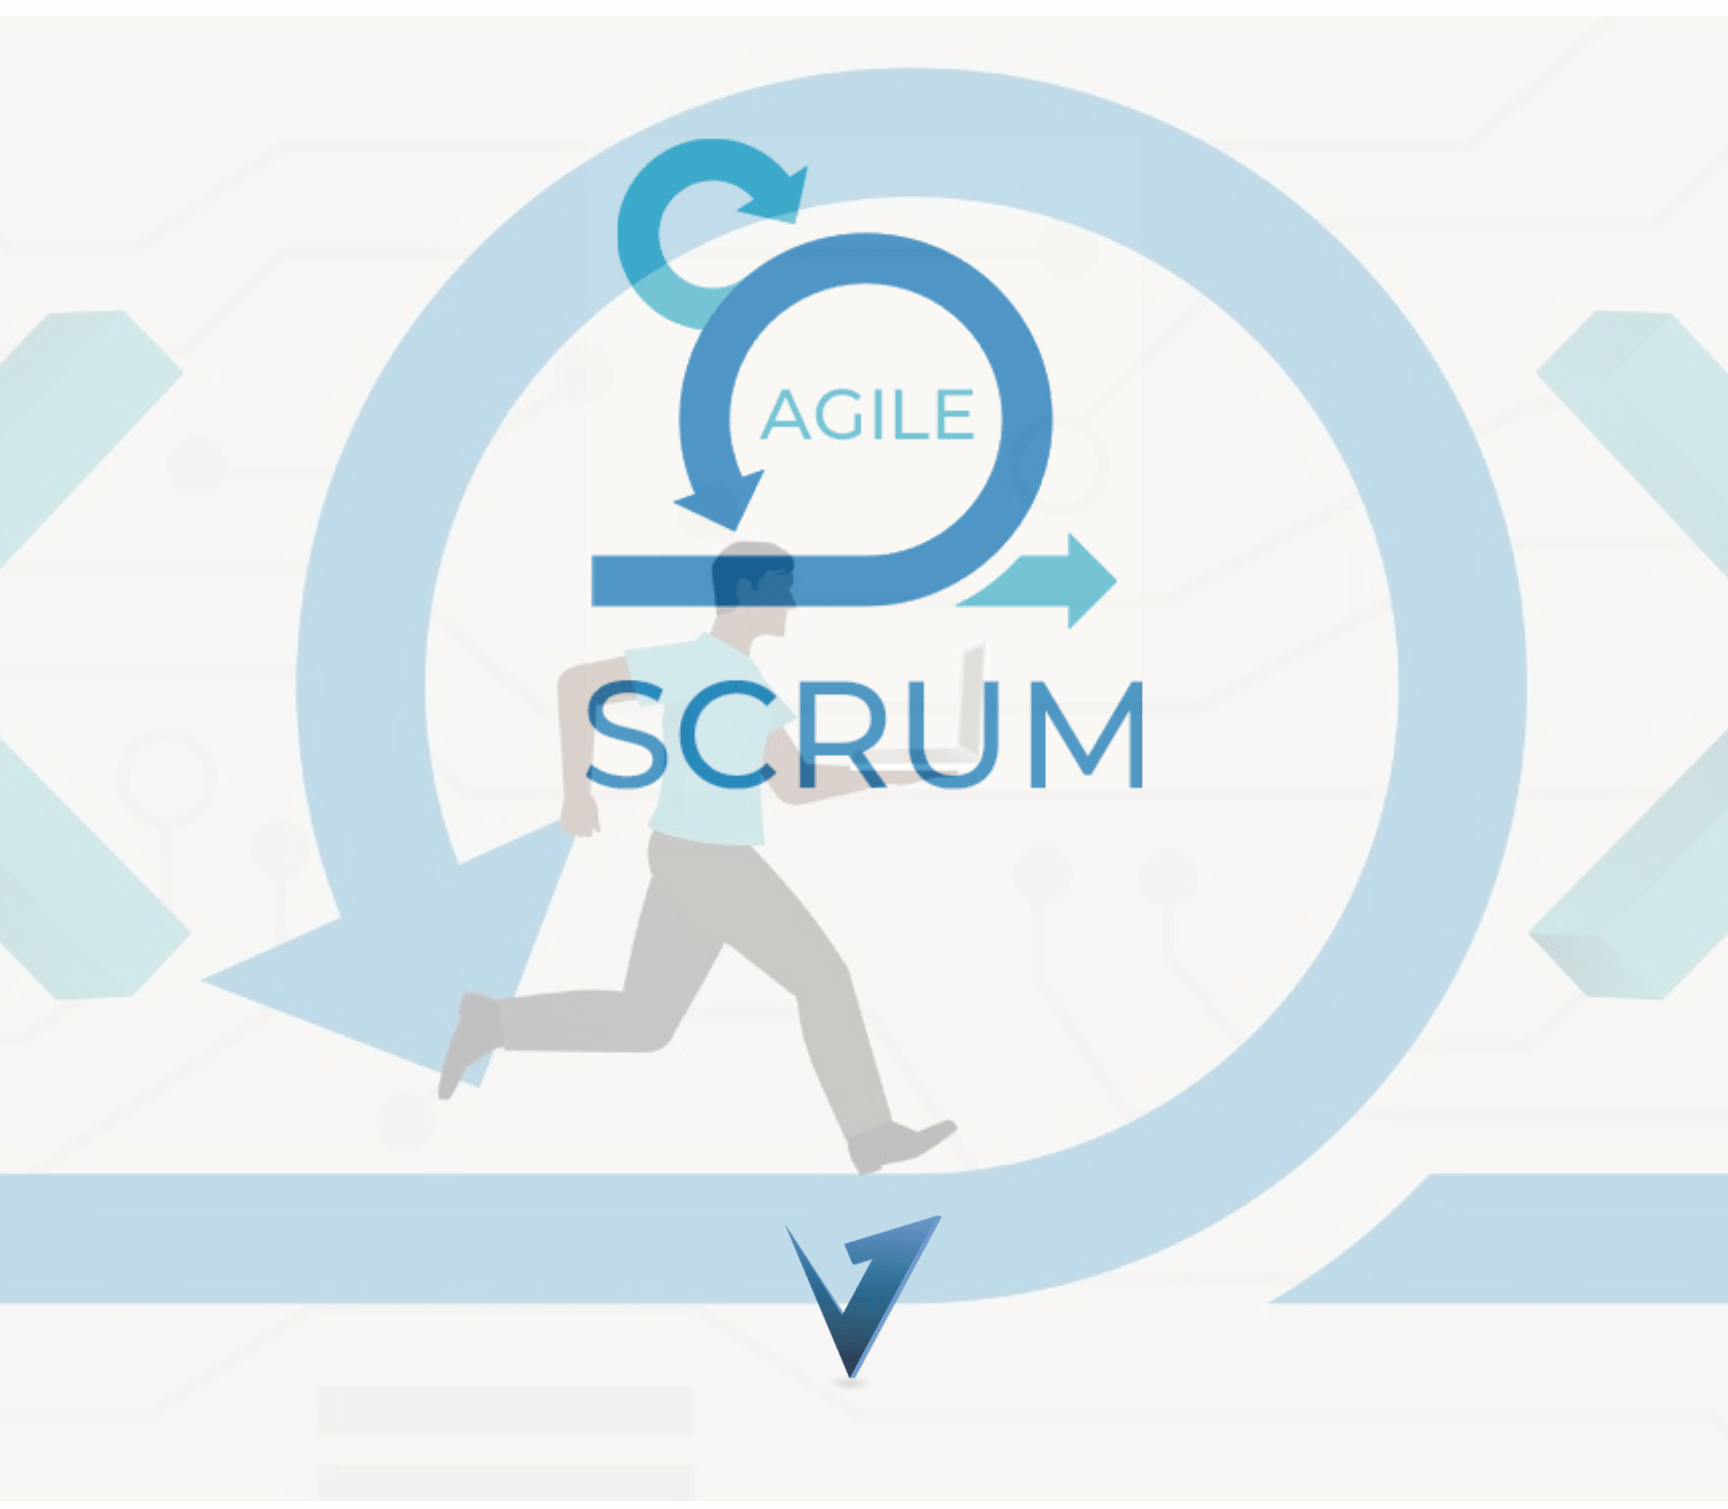 Agile Scrum Training Course, Classes, and Programs